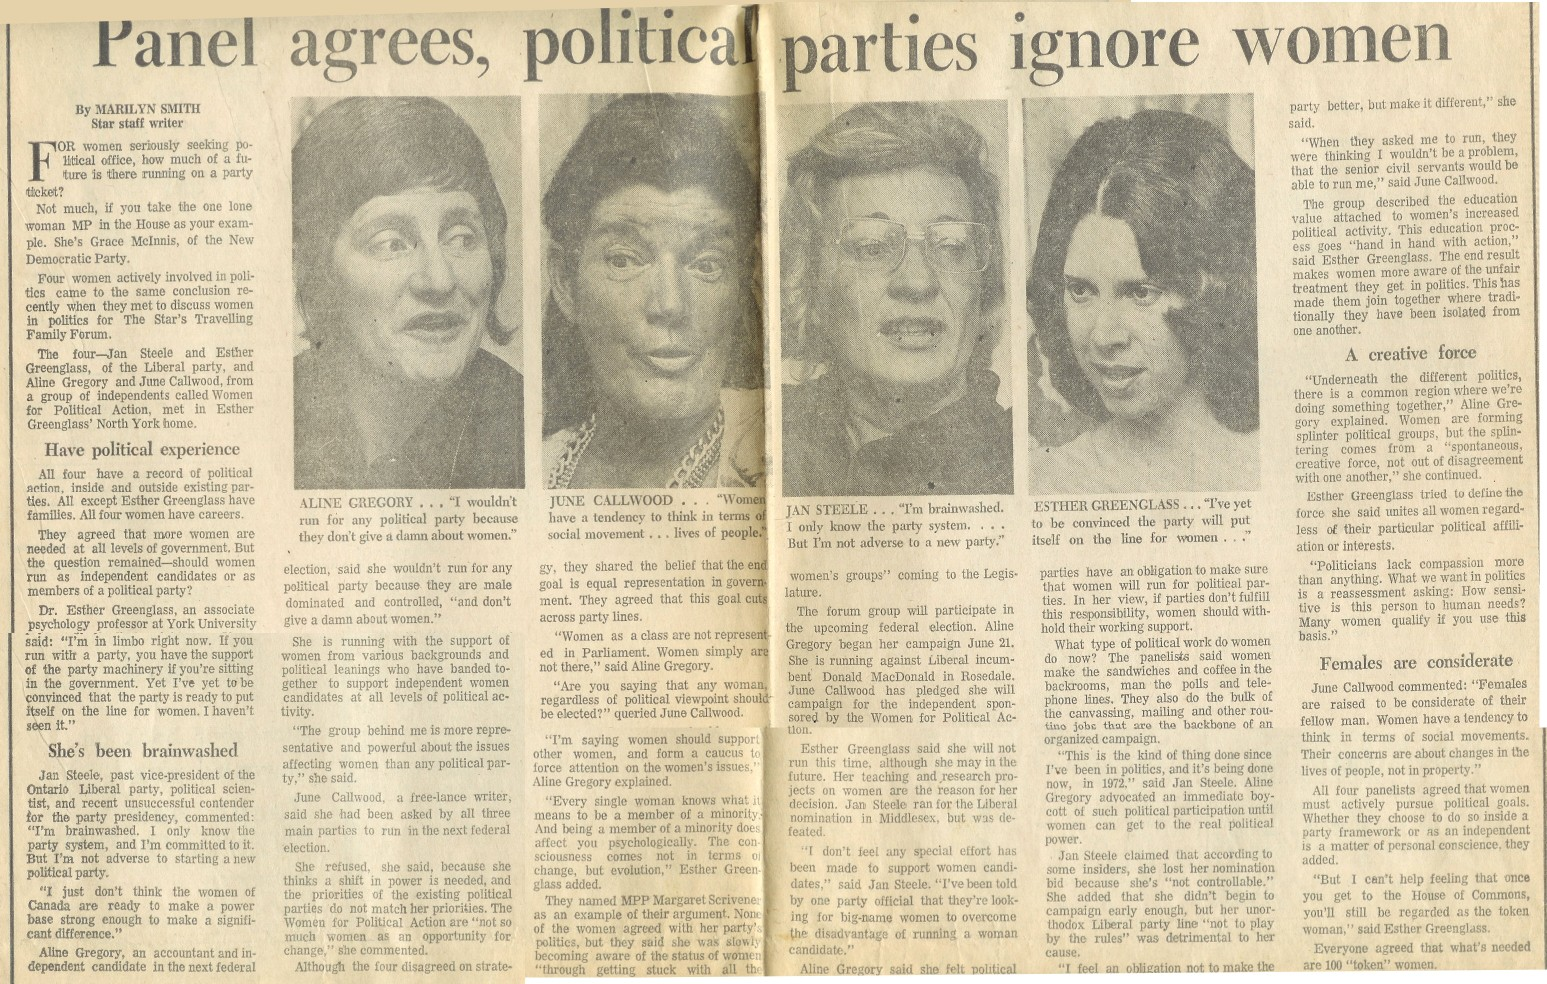 Panel agrees, political parties ignore women - Toronto Star, June 24, 1972